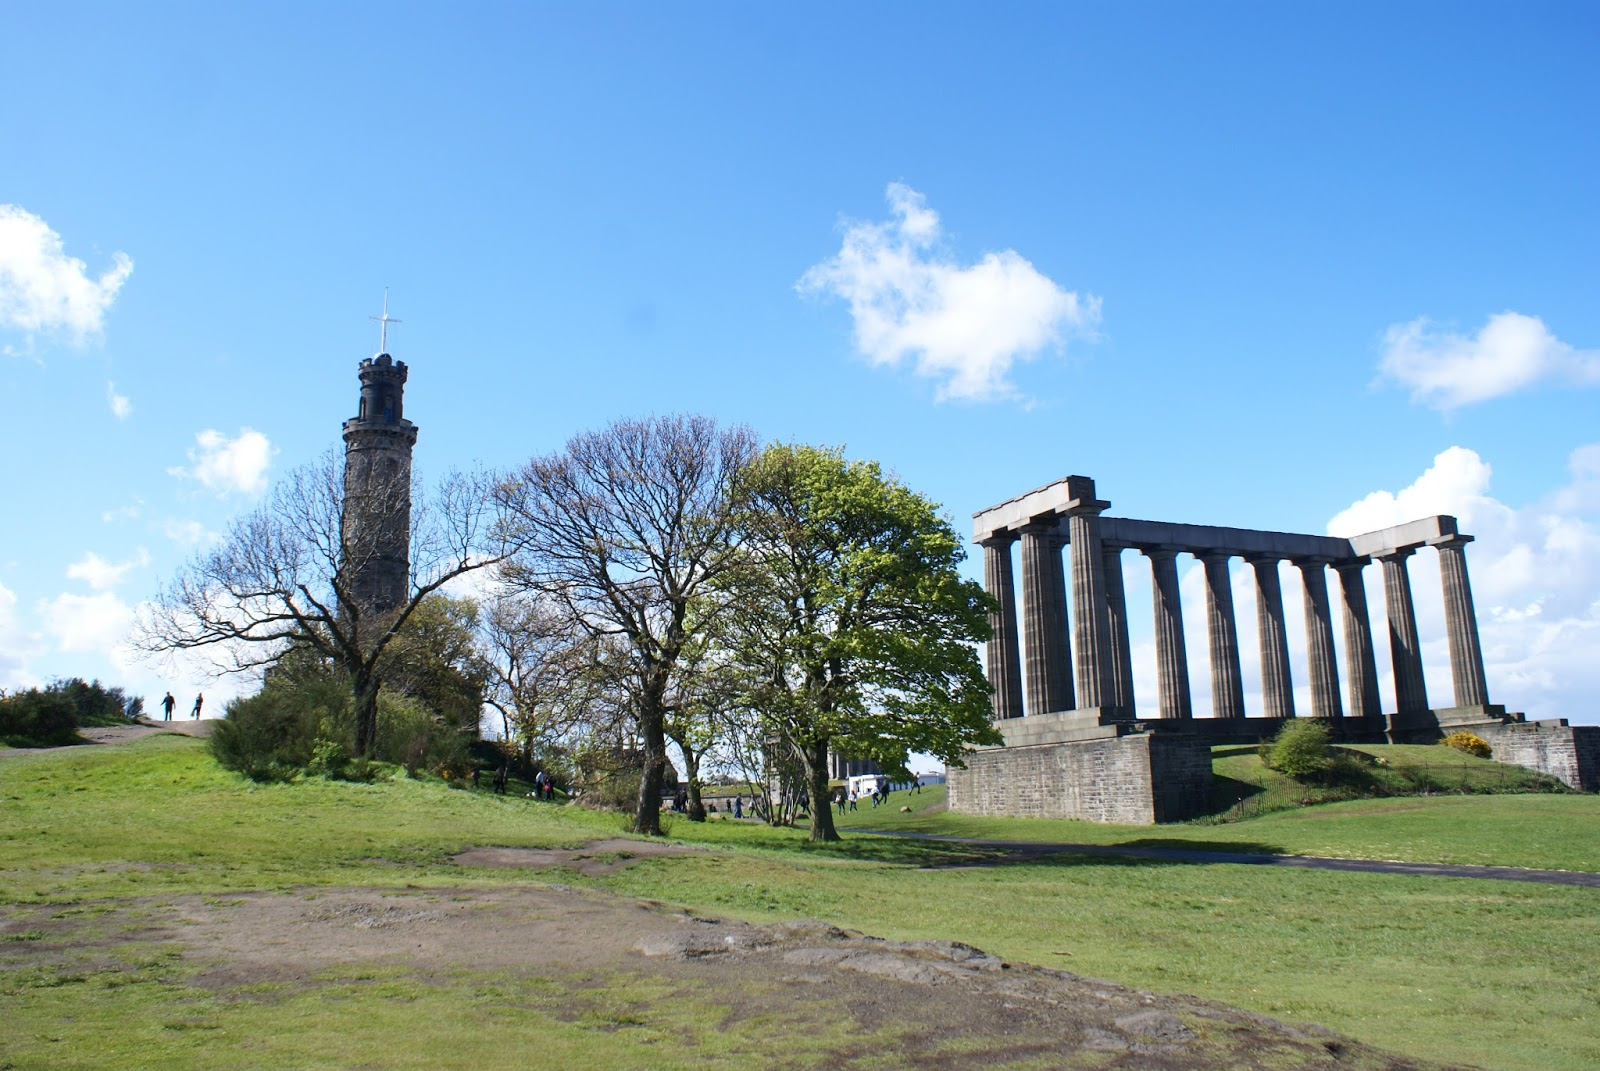 edinburgh calton hill scotland uk